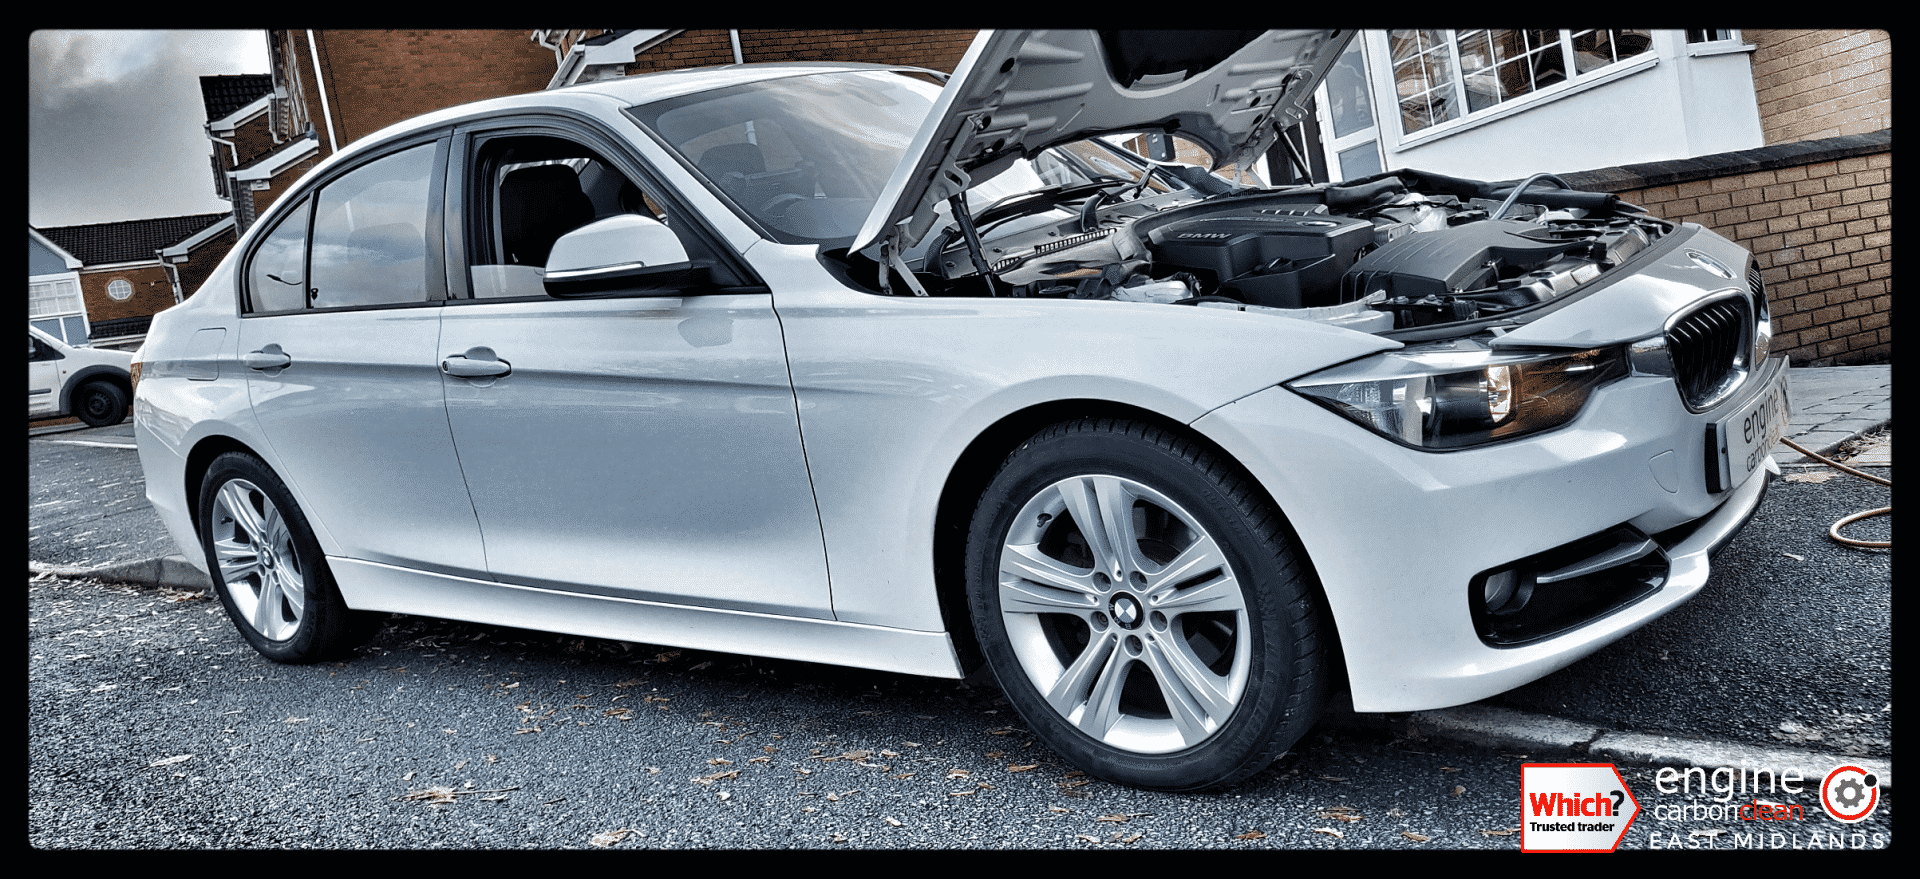 Diagnostic Consultation and Engine Carbon Clean on a BMW 320i petrol (2013 - 52,440 miles)